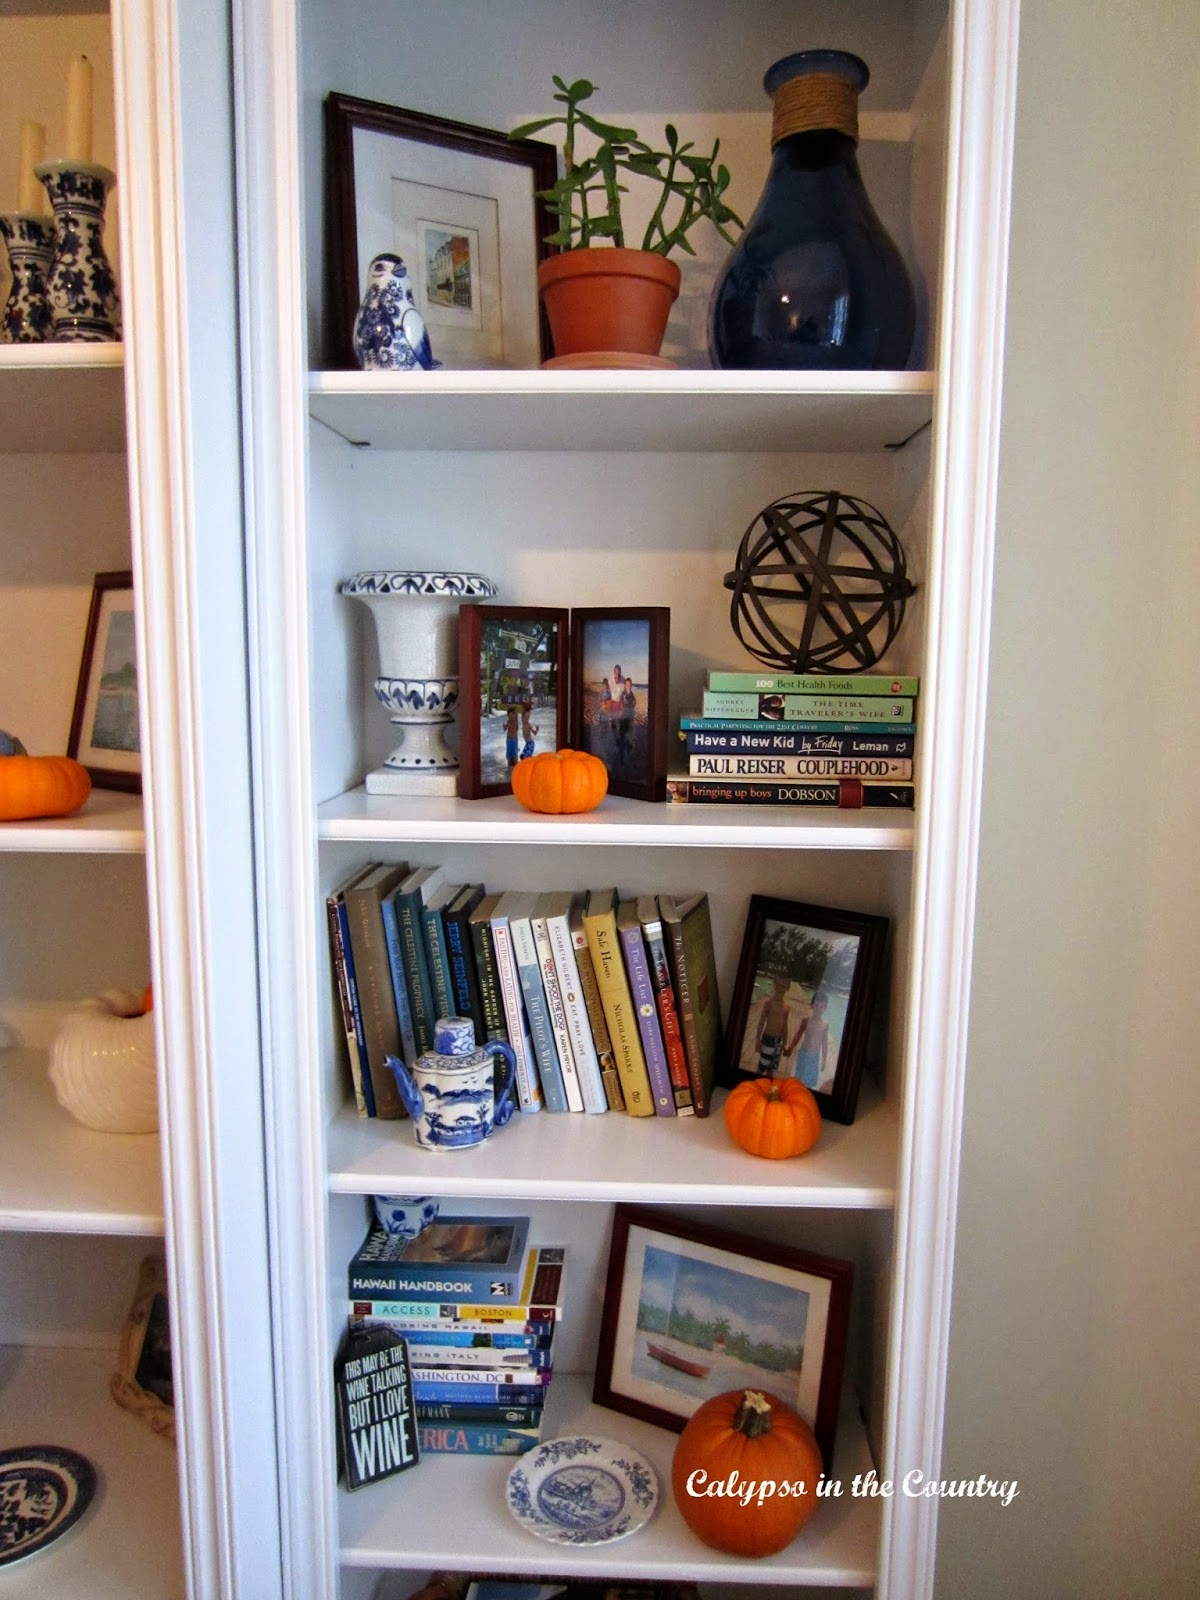 Fall Shelves in home office - using orange pumpkins to add to the blue and white decor